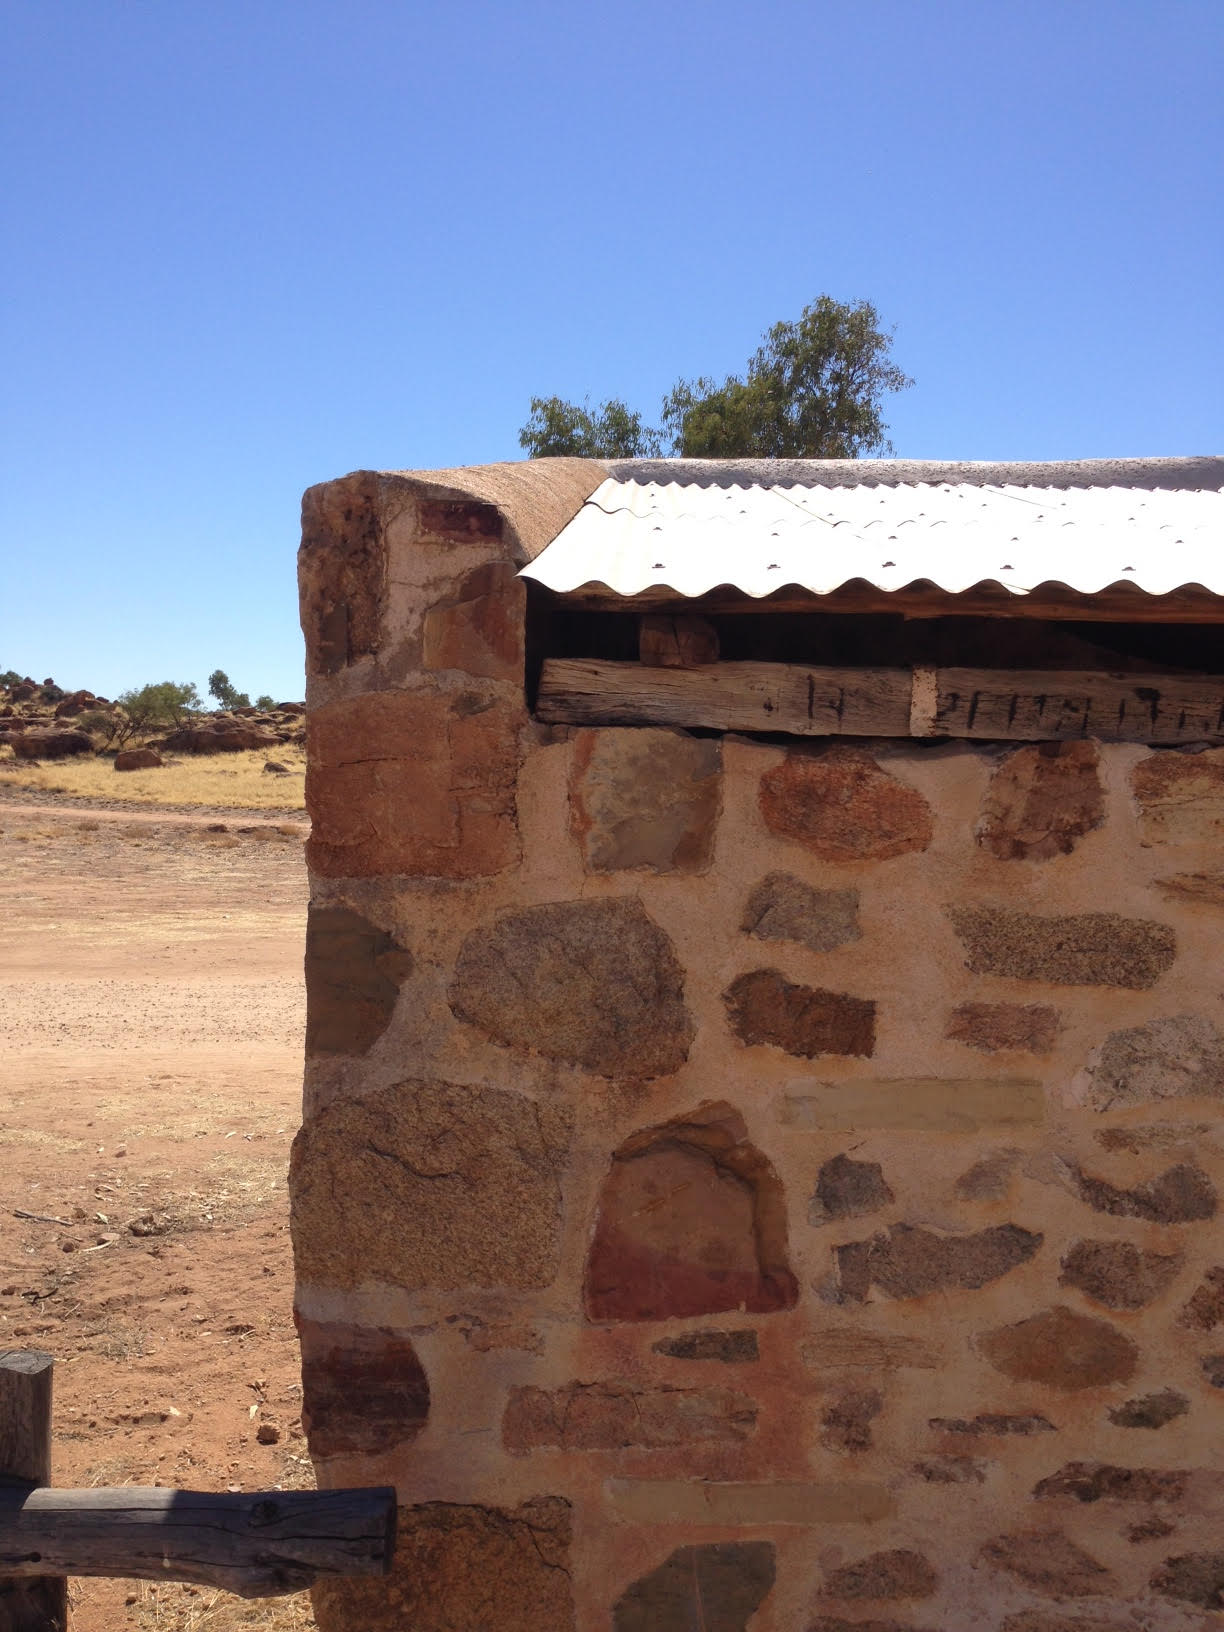 The Telegraph Station, Stone Parapet & Roof sheeting junction